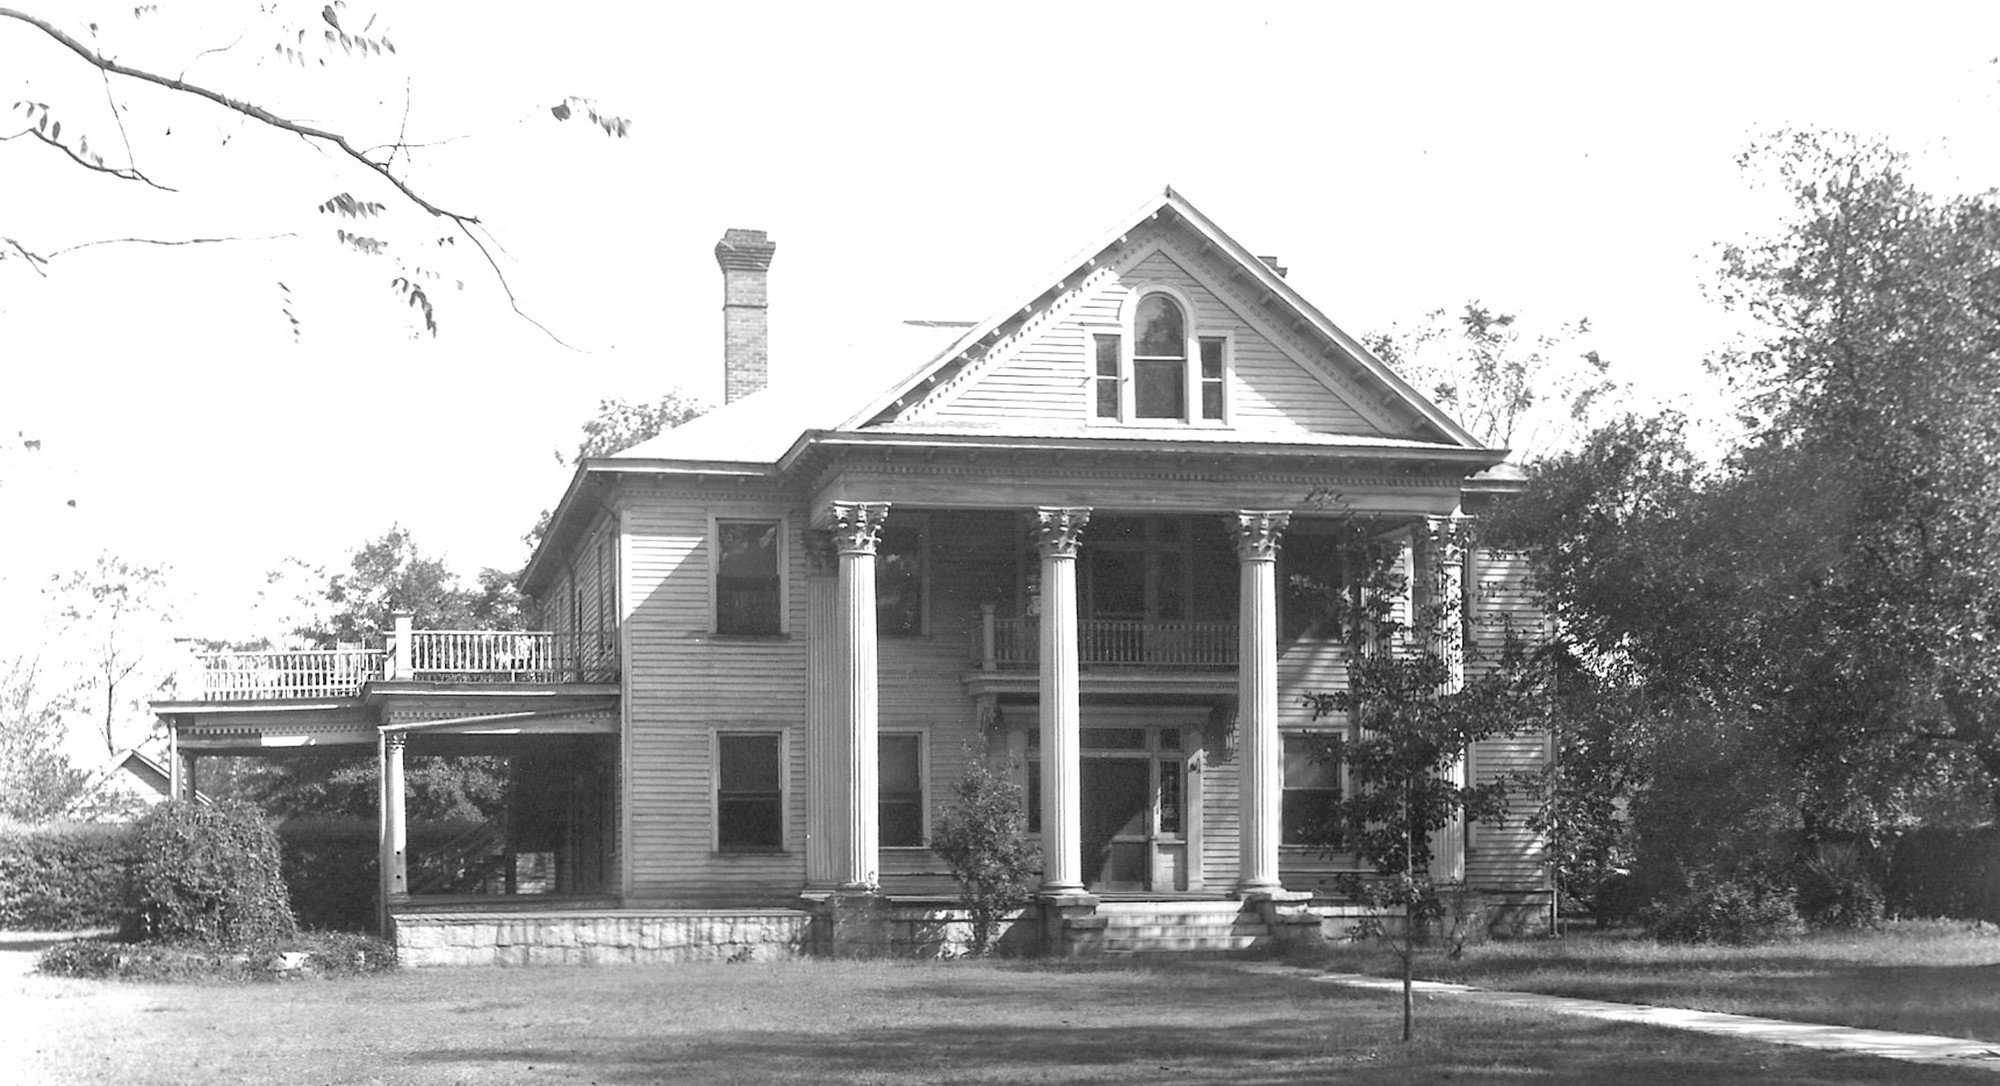 The Shaw family home was at 66 Broad St.